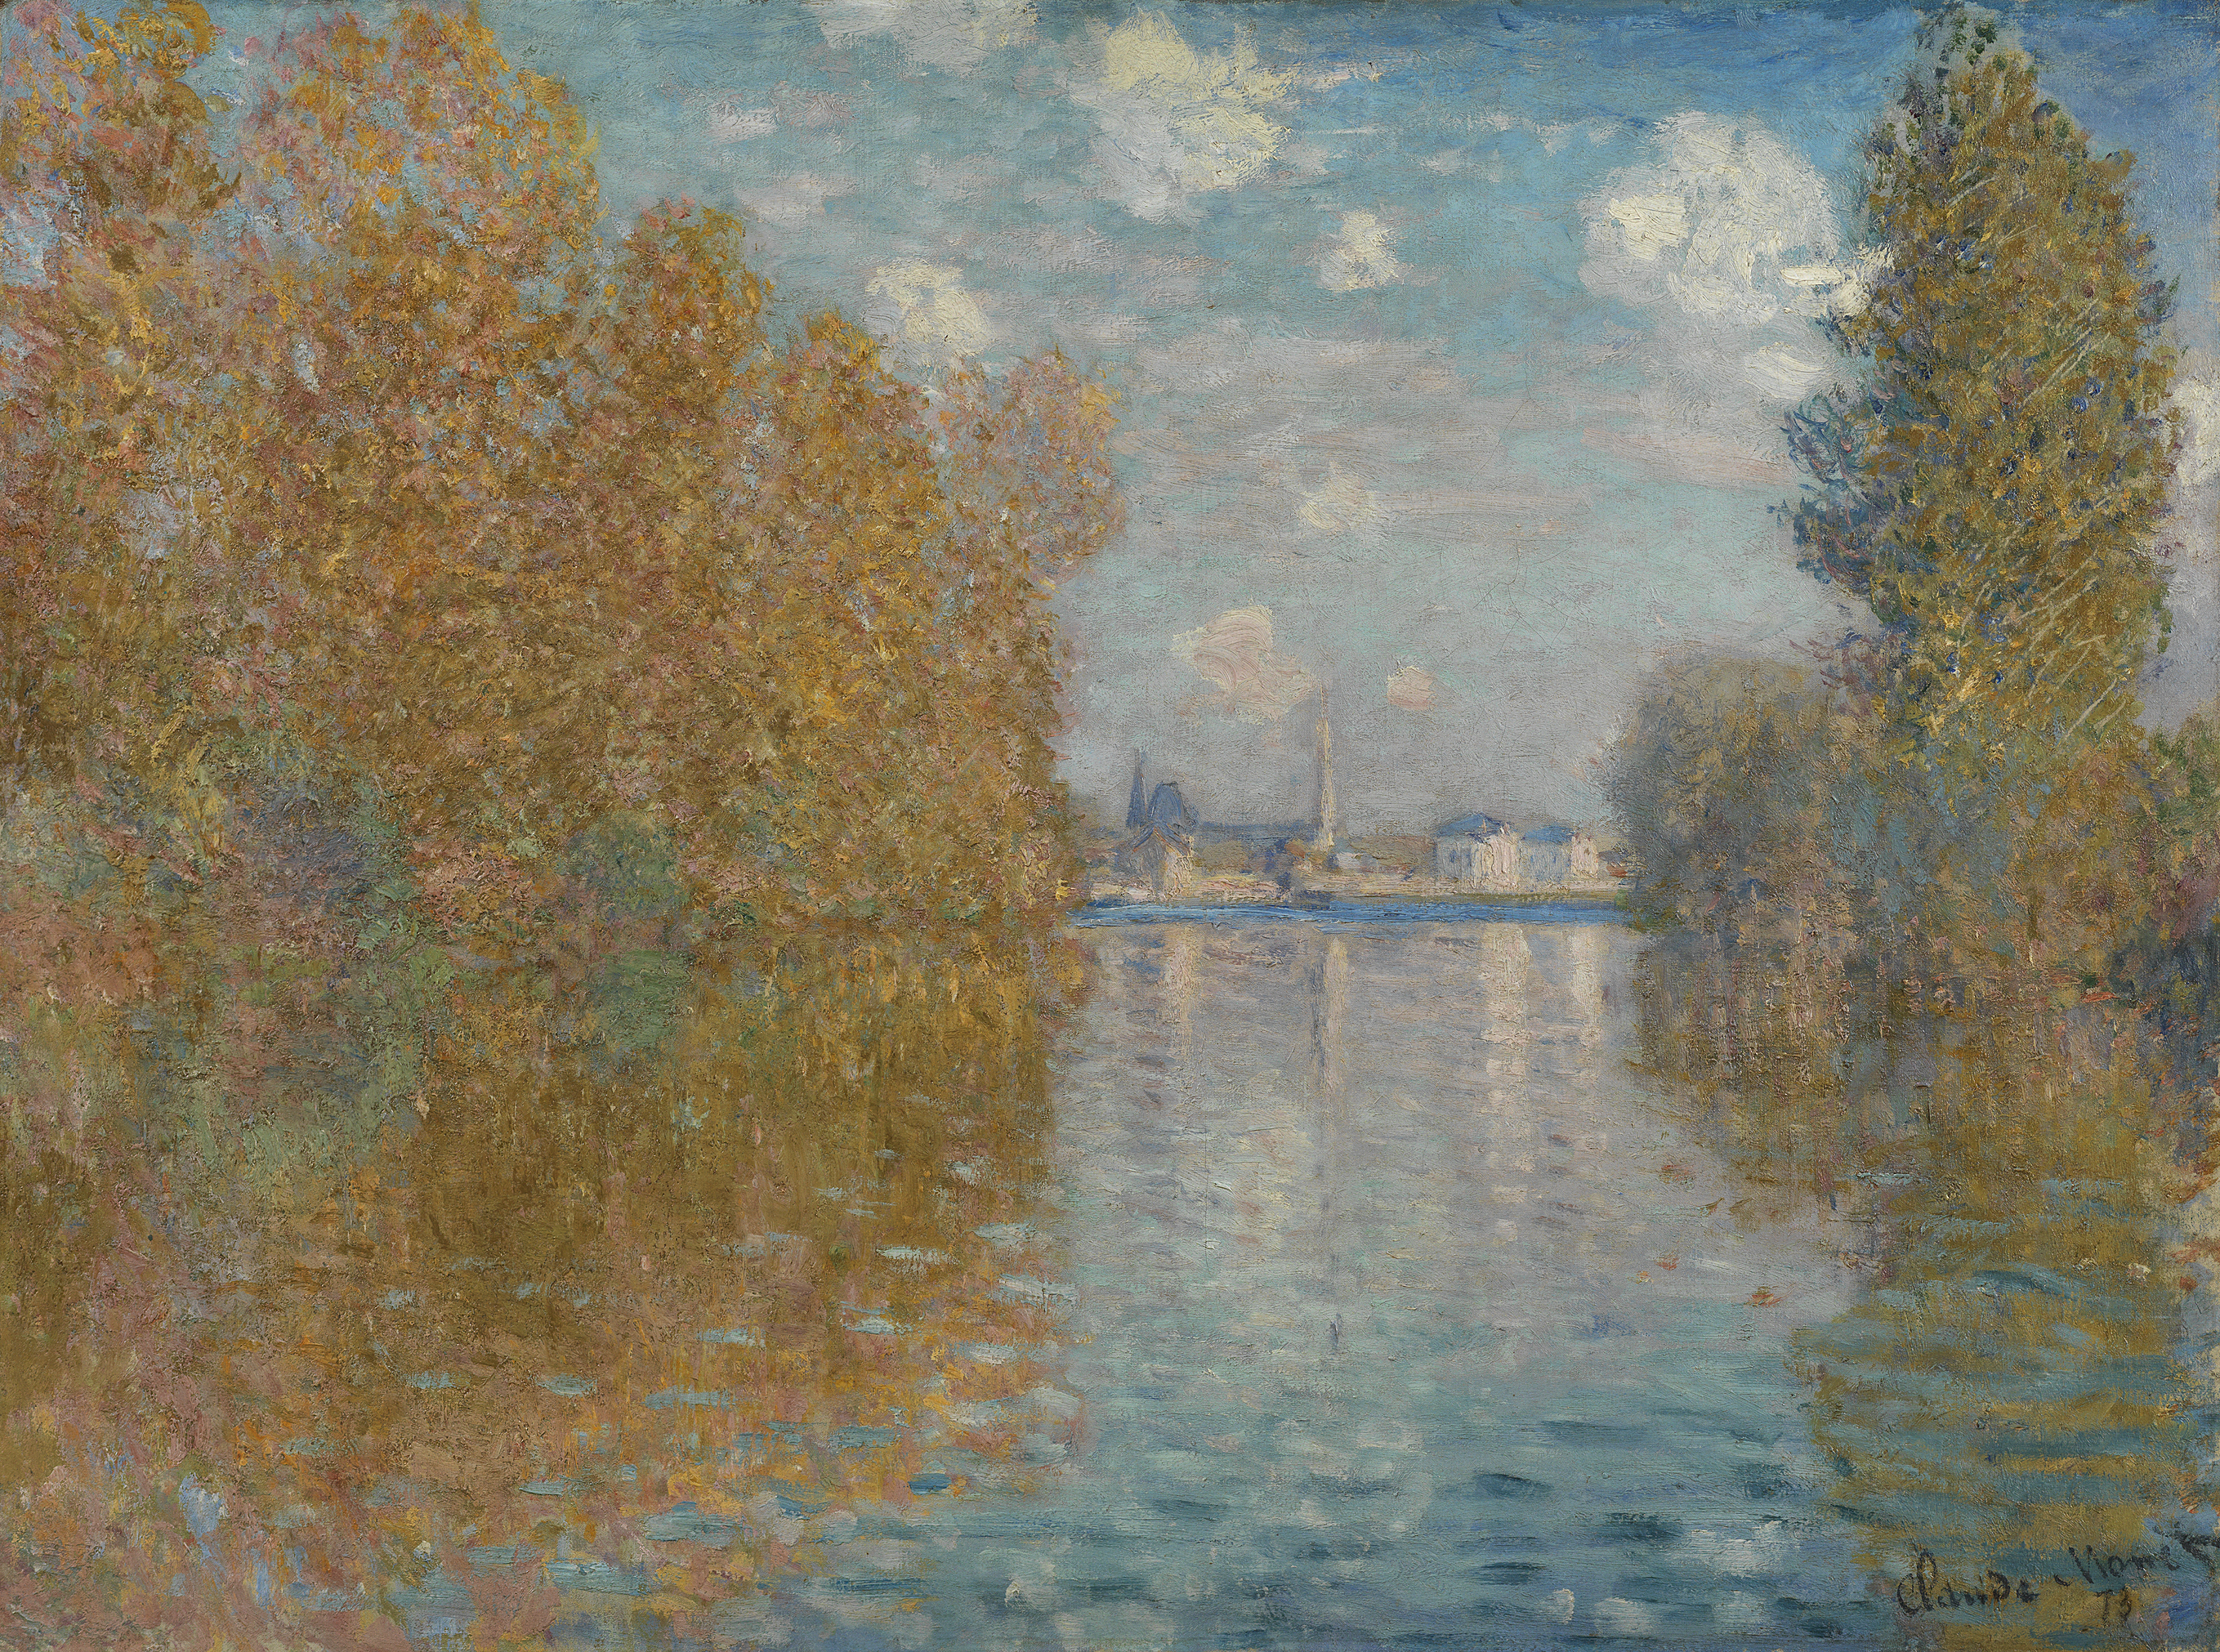 Autumn Effect at Argenteuil - Claude Monet, 1873